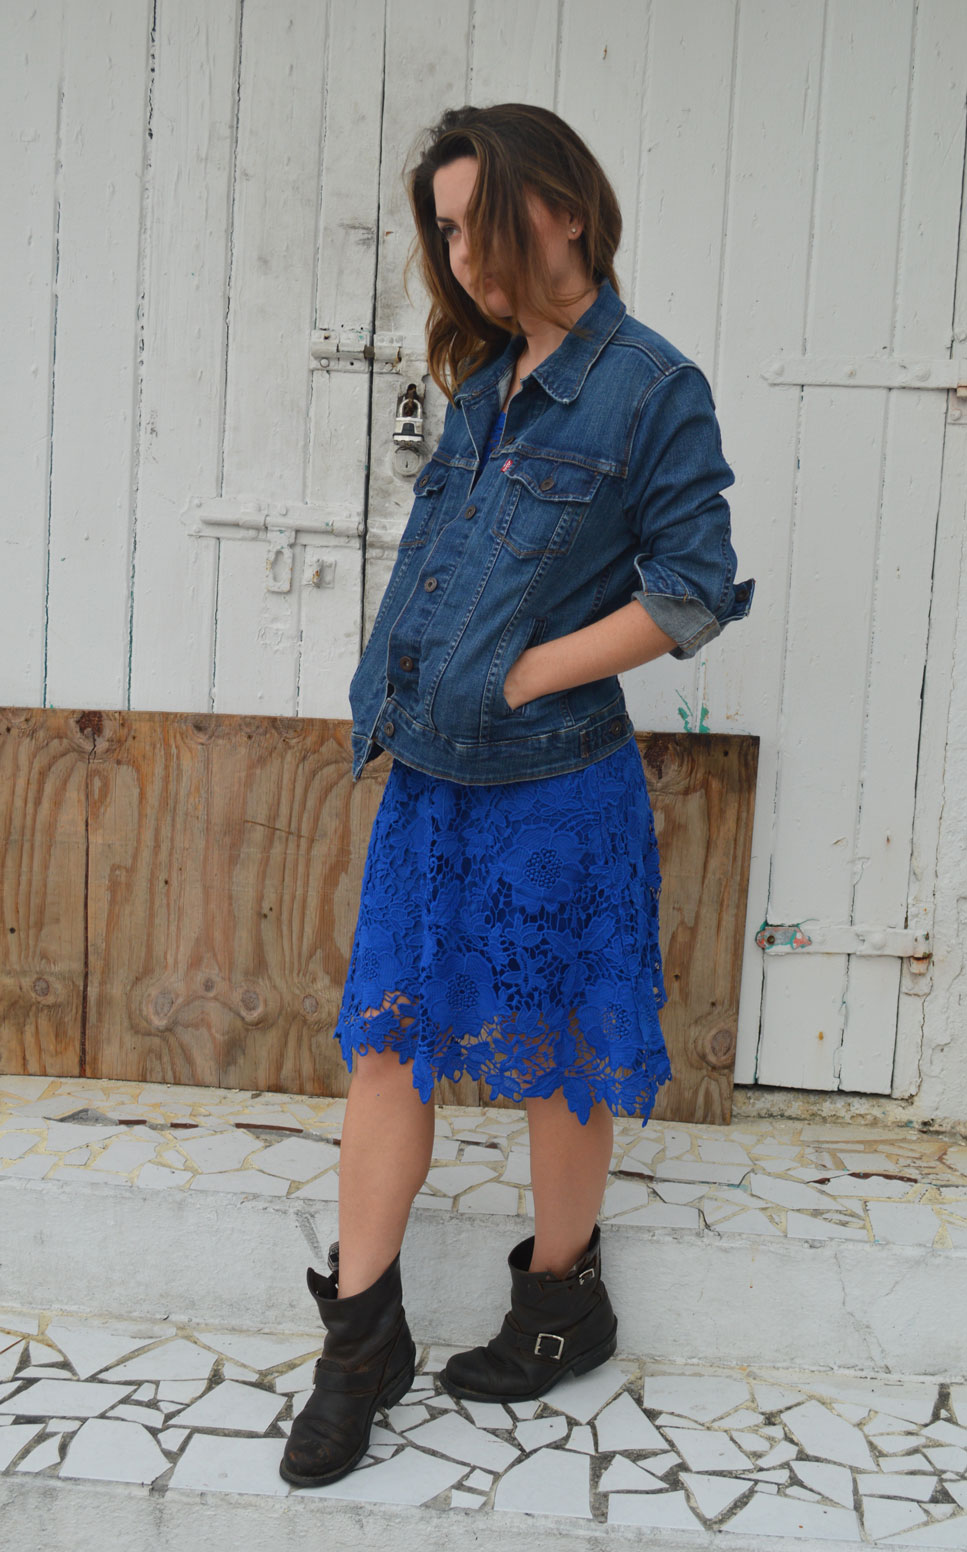 favorite-levi-jean-jacket-denim-zara-blue-lace-dress-frye-boots-best-motorcycle-lifestyle-style-blogger-nassau-bahamas-2014.jpeg